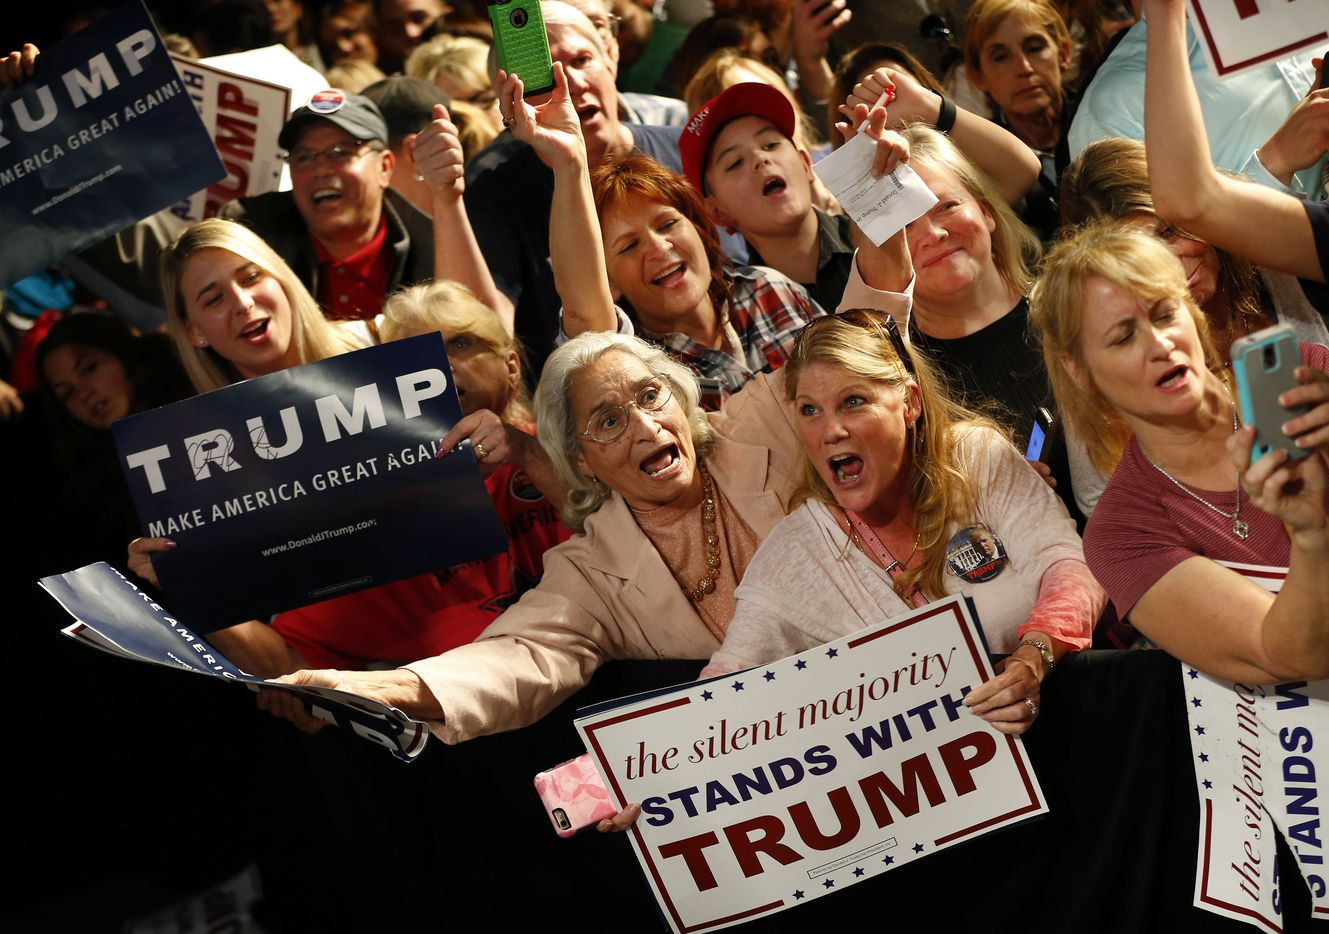 Supporters of Republican presidential candidate Donald J. Trump and New Jersey Gov. Chris Christie yelled for their attention following a rally at the Fort Worth Convention Center on Feb. 26, 2016. Trump was campaigning in Texas ahead of the Super Tuesday elections.